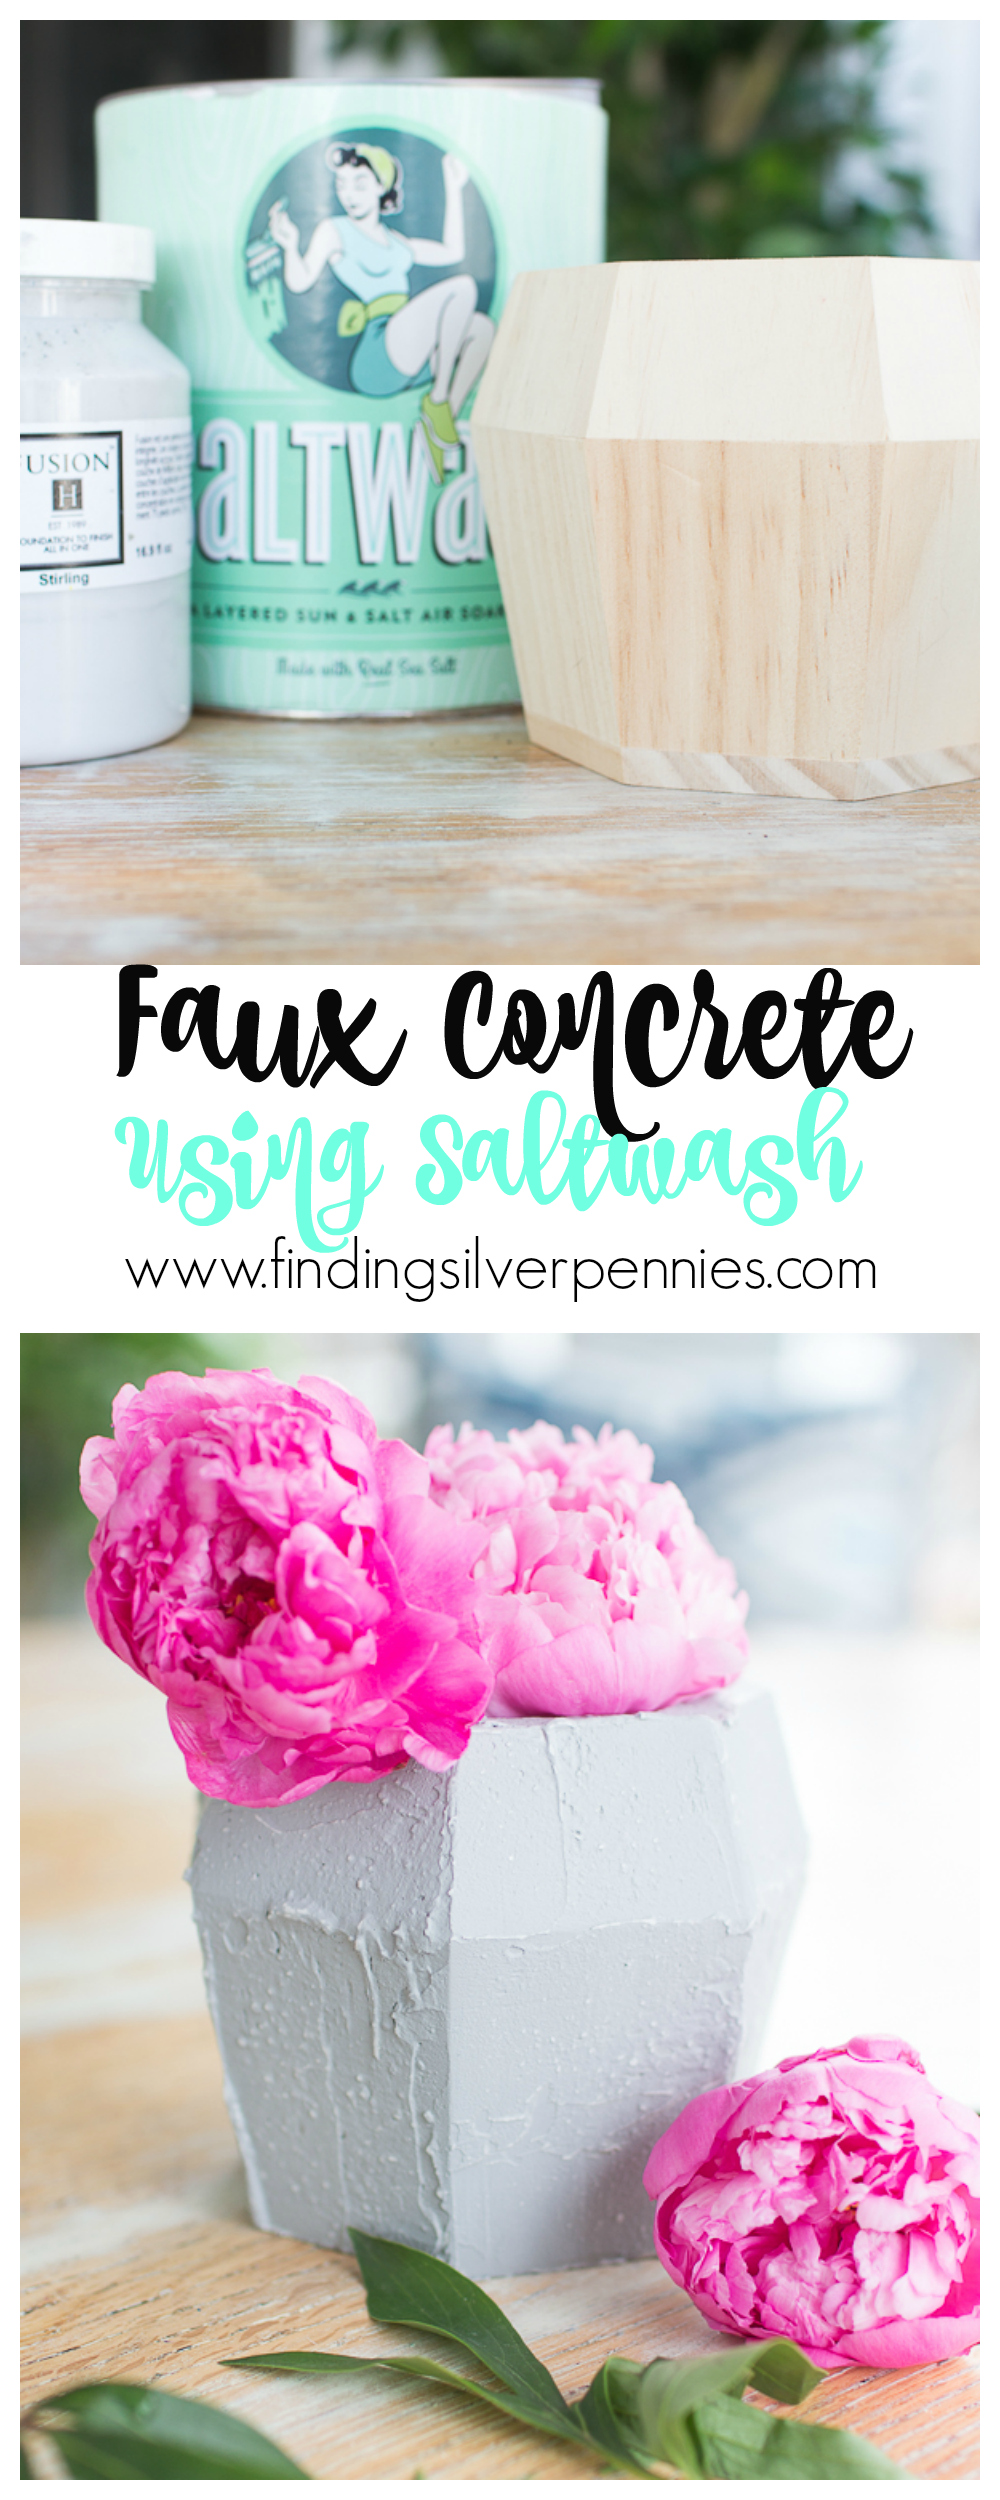 Easy step by step Faux Concrete Using Saltwash with Video I Finding Silver Pennies